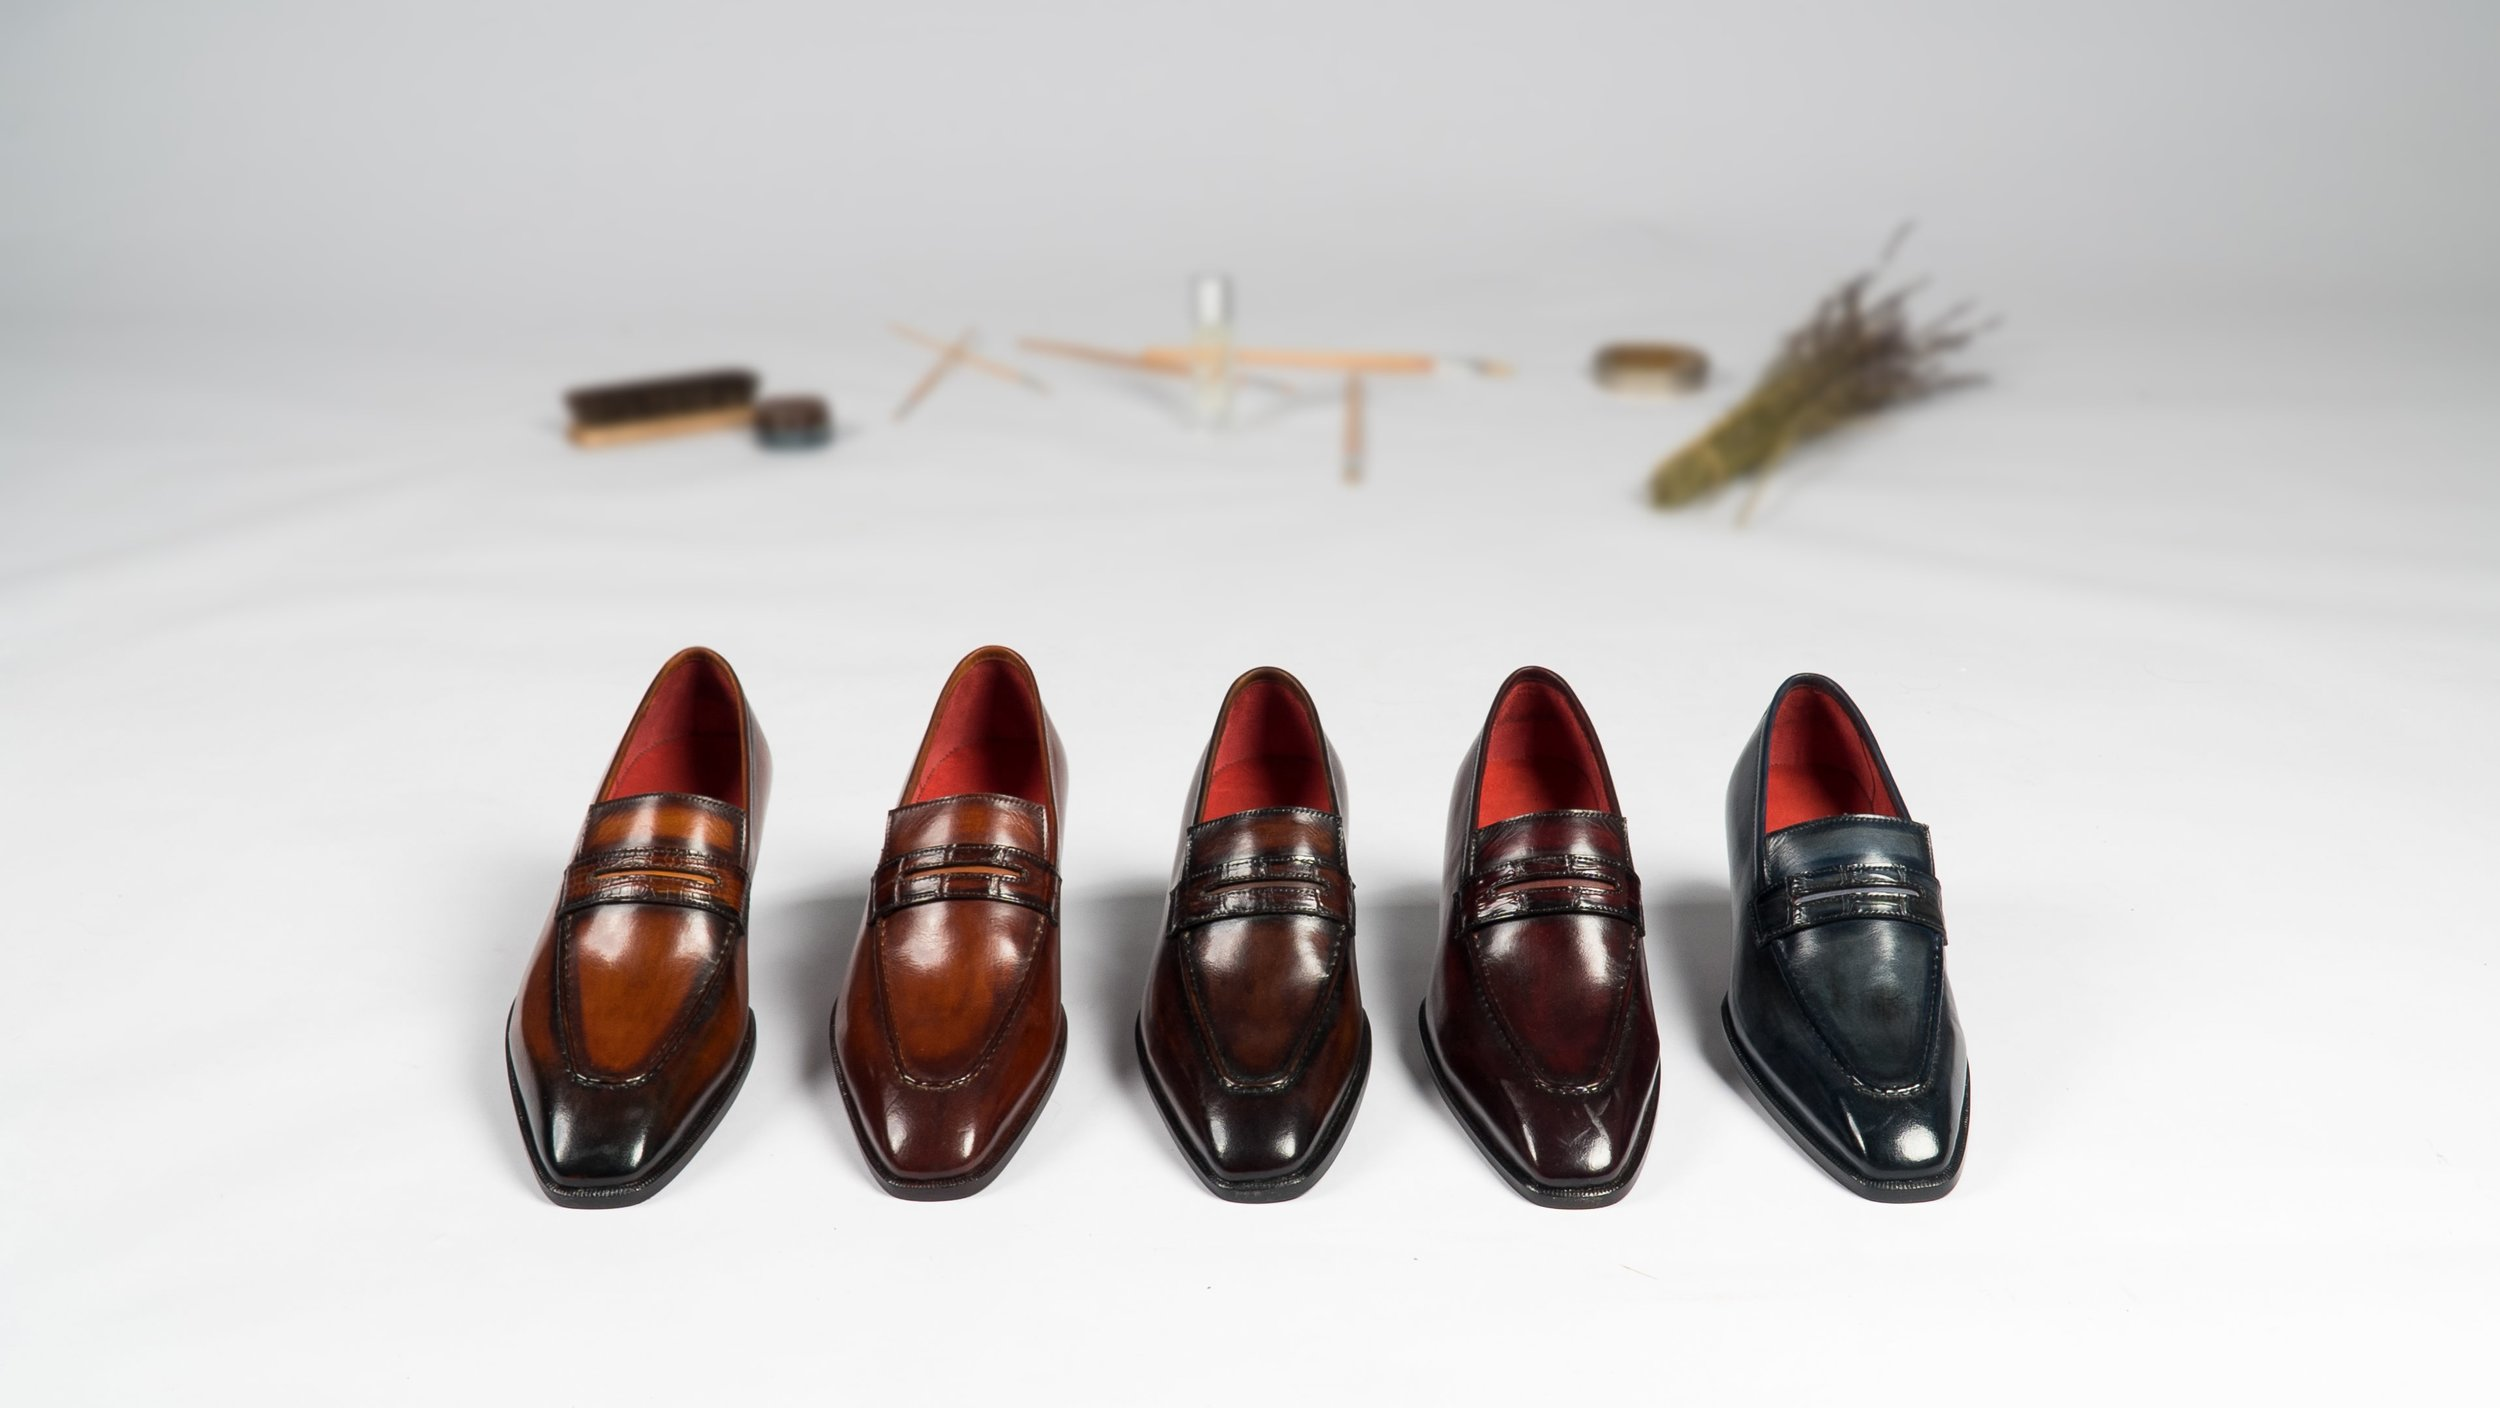 UNO, Patina Penny Loafers in 5 colors